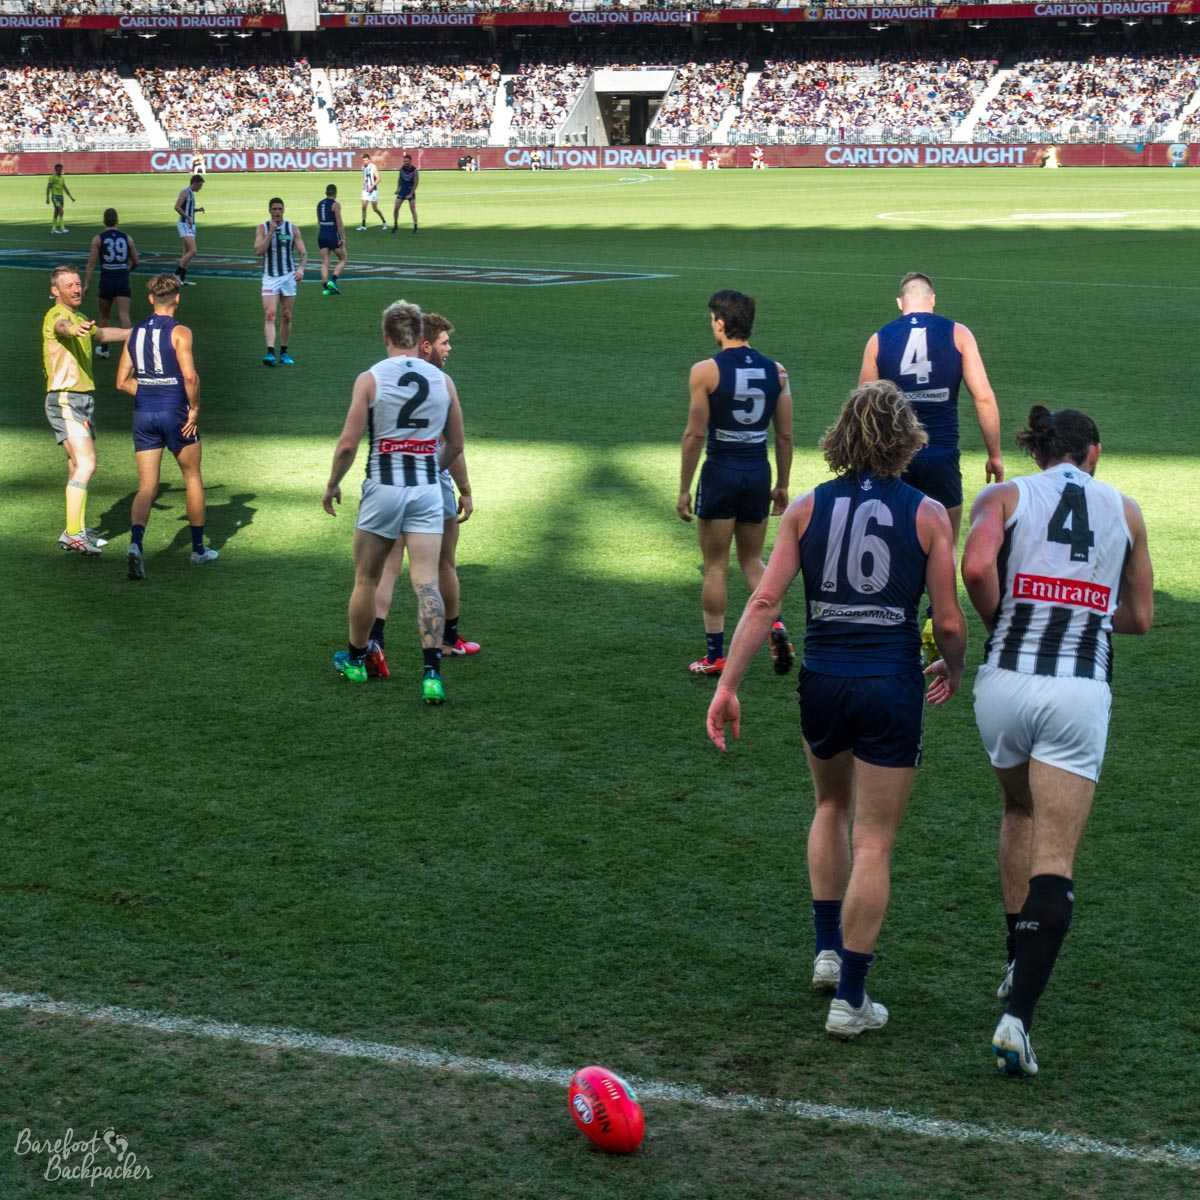 Play during an AFL game at Optus Stadium, Perth